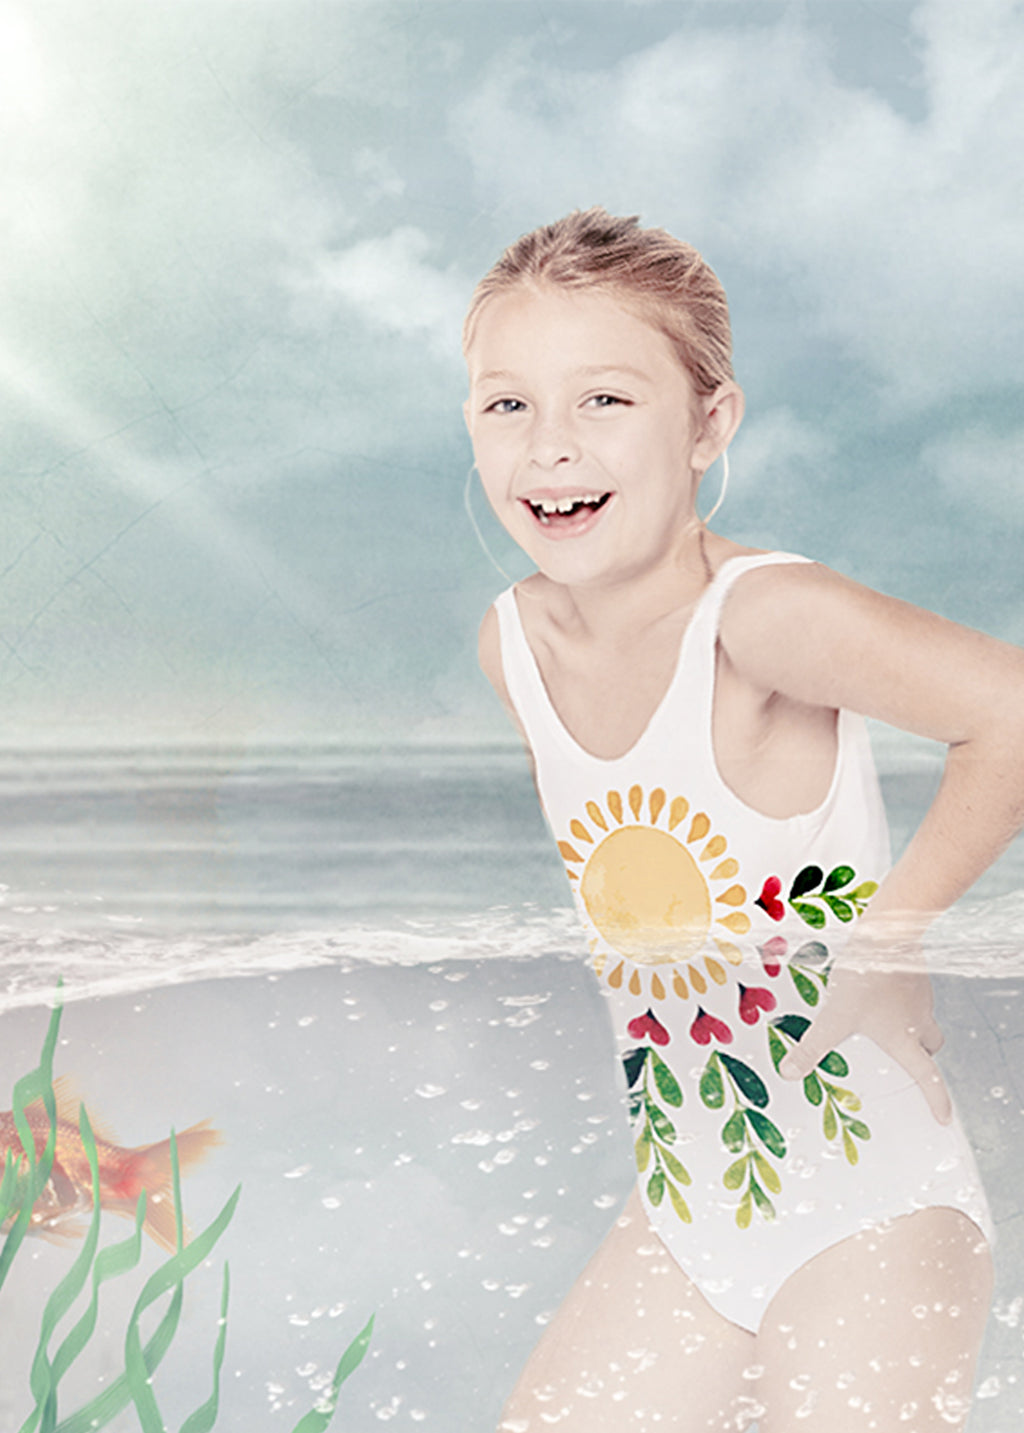 swimwear and beachwear for girls, beachwear for girls, girls beachwear